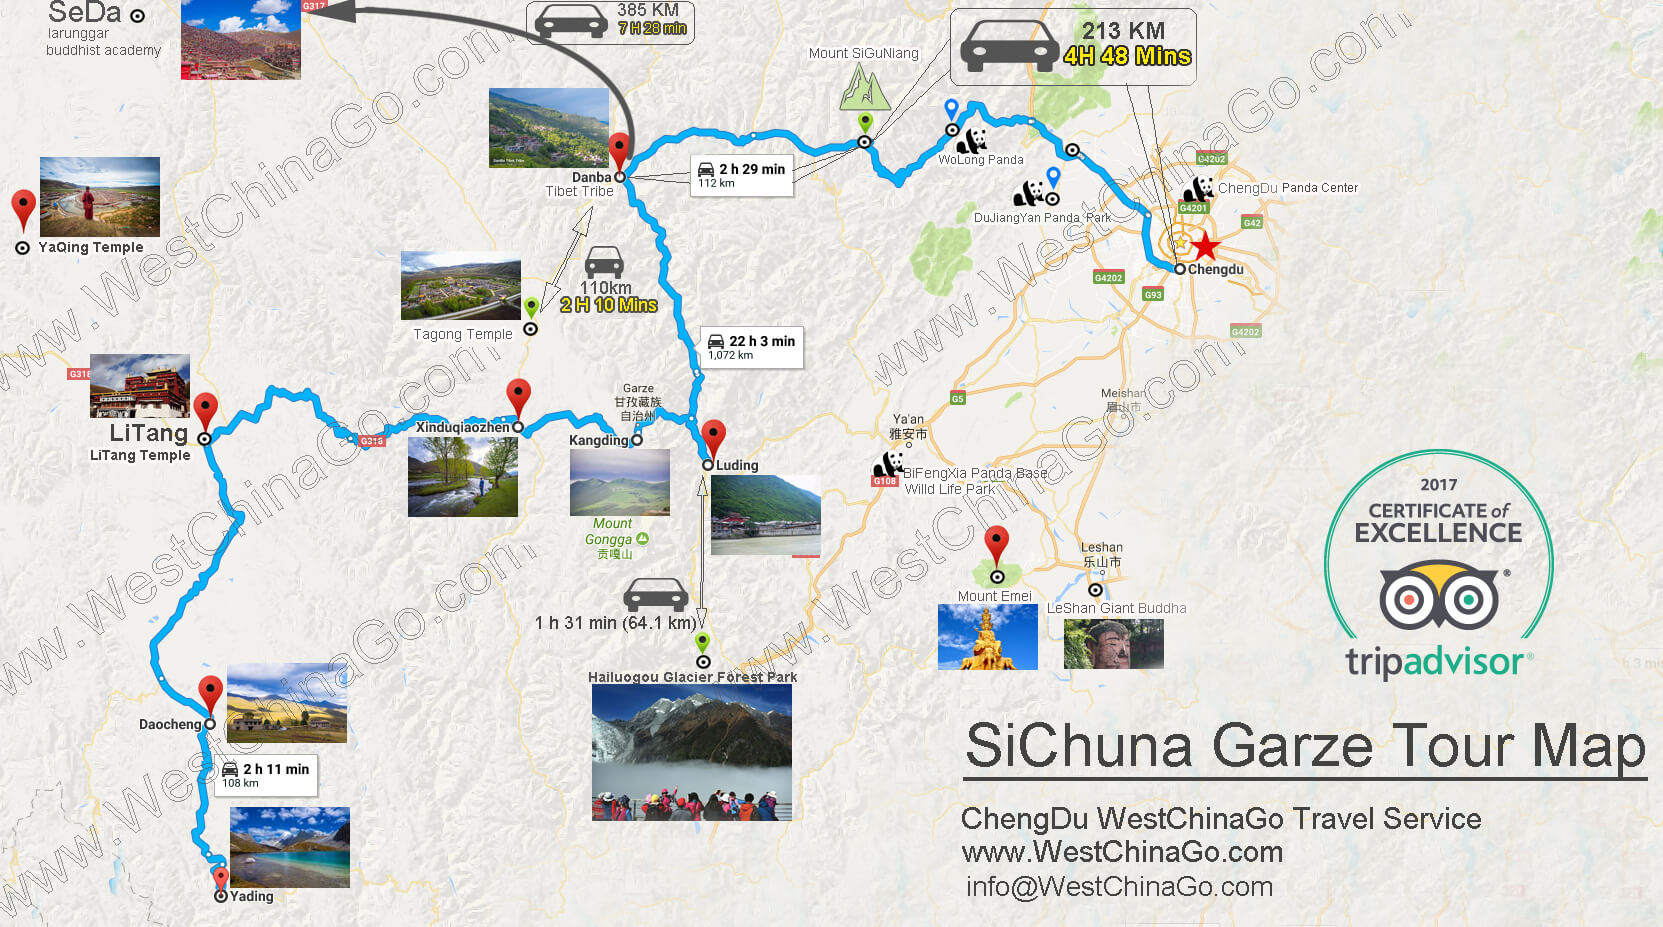 sichuan garze tour map